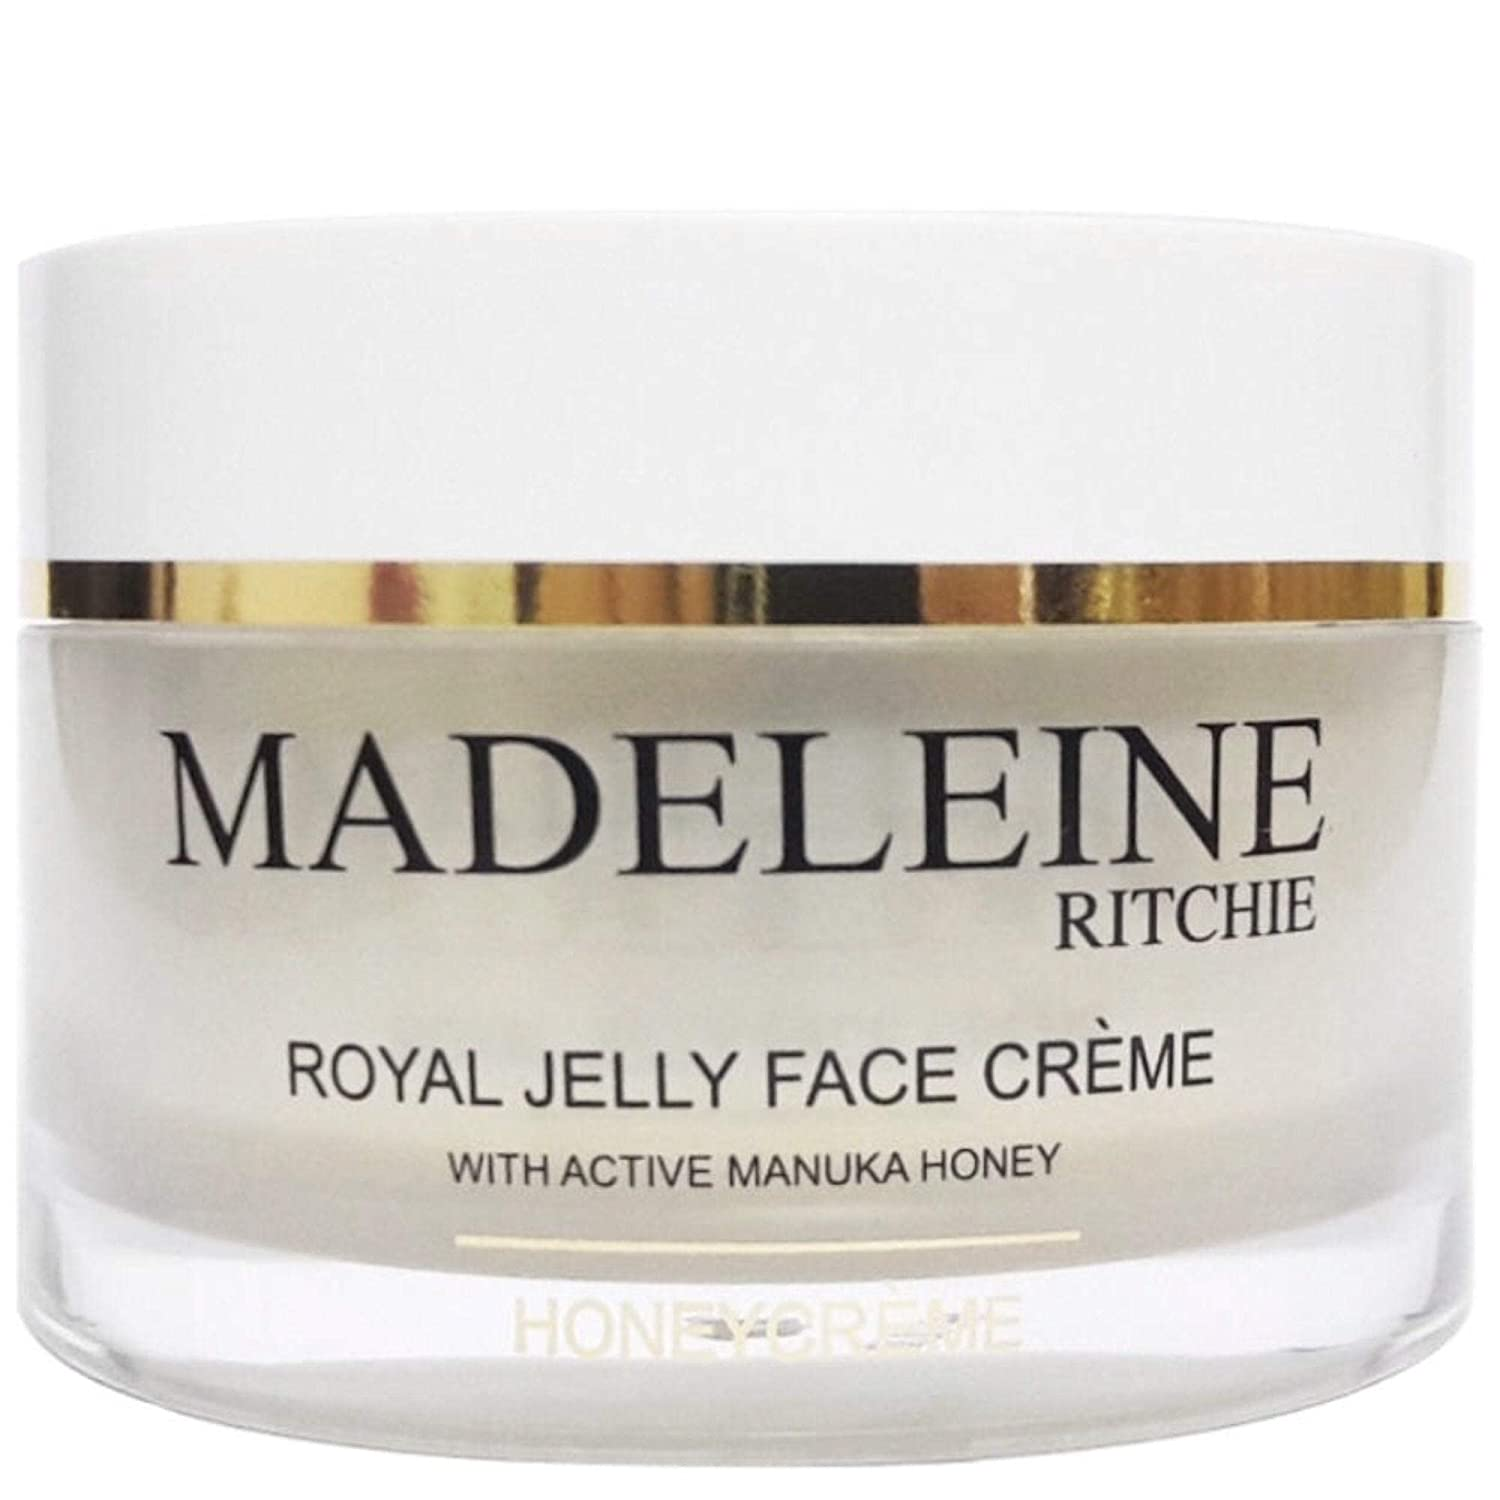 Madeleine Ritchie HoneyCreme New Zealand Royal Jelly Face Cream with active manuka honey 3.4 fl.oz jar. Original, Authentic & Natural anti-aging cream.